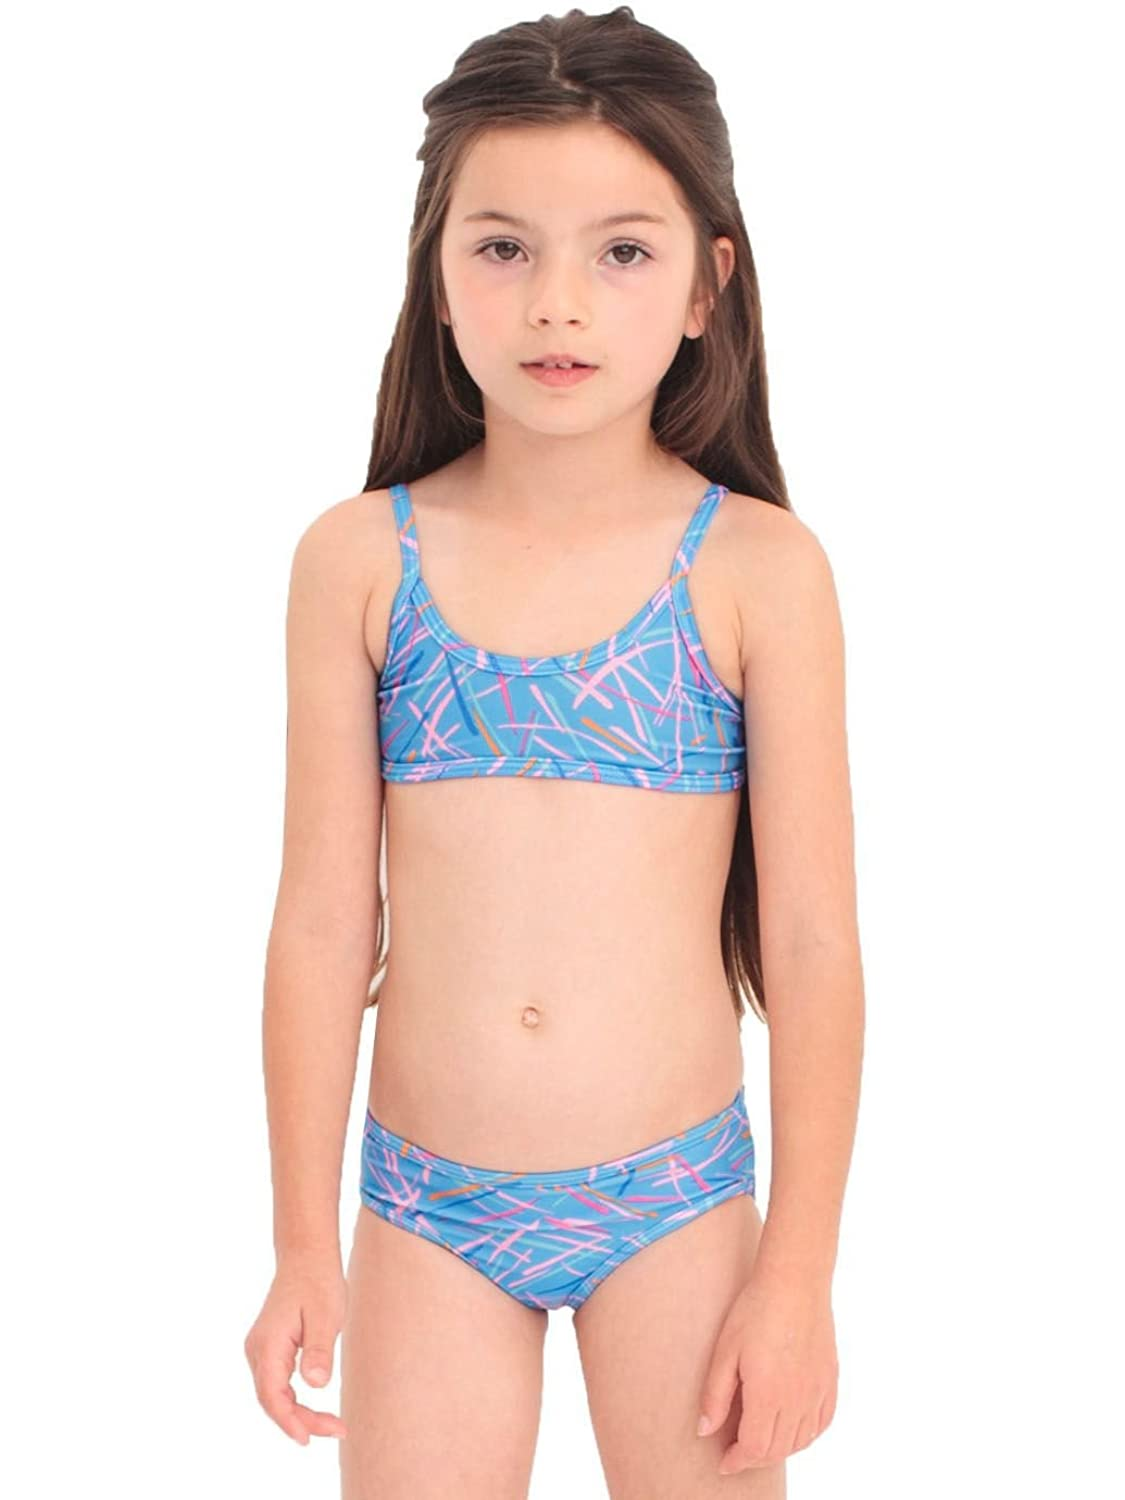 Gallery images and information childrens bikinis